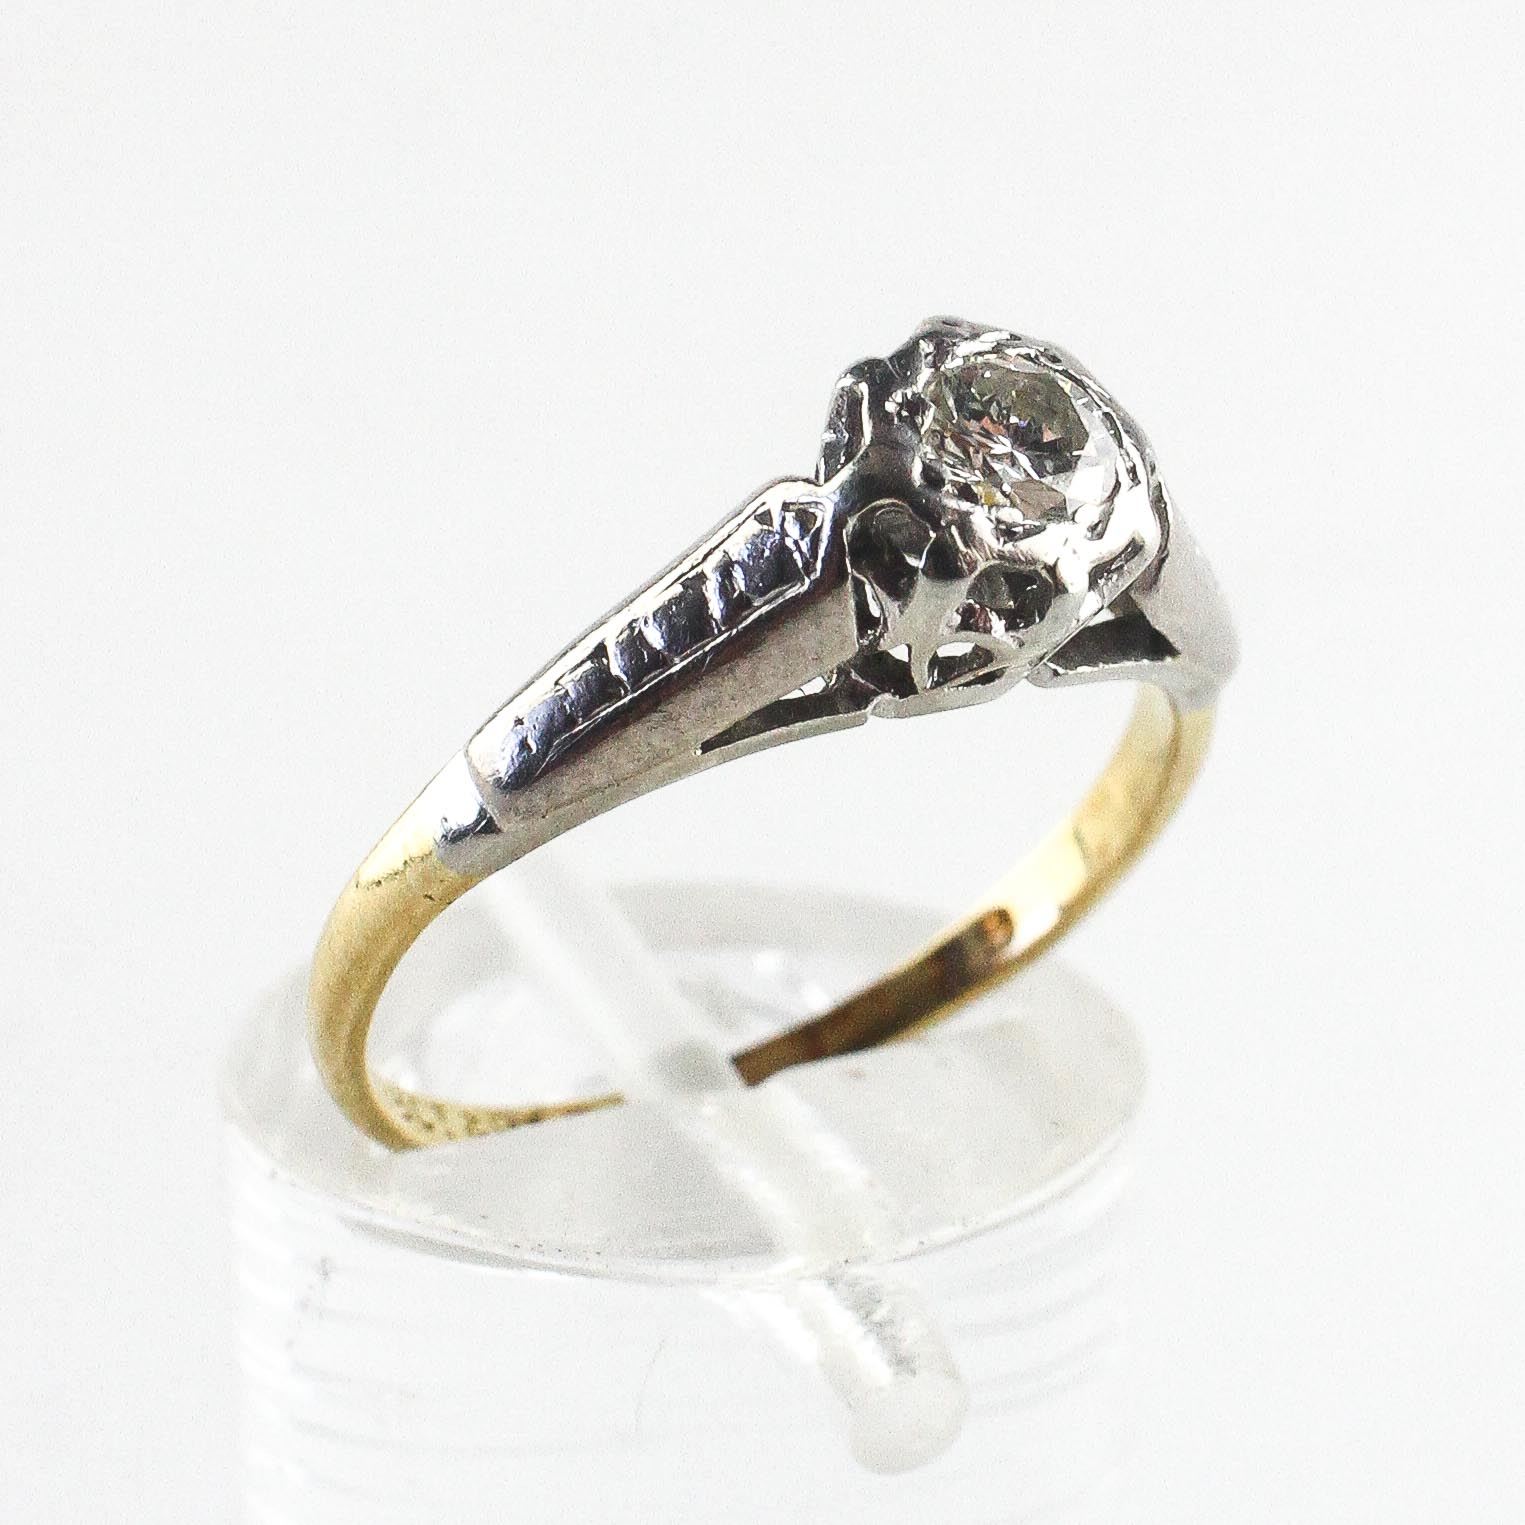 A yellow and white metal ring. Illusion set with a round brilliant cut diamond